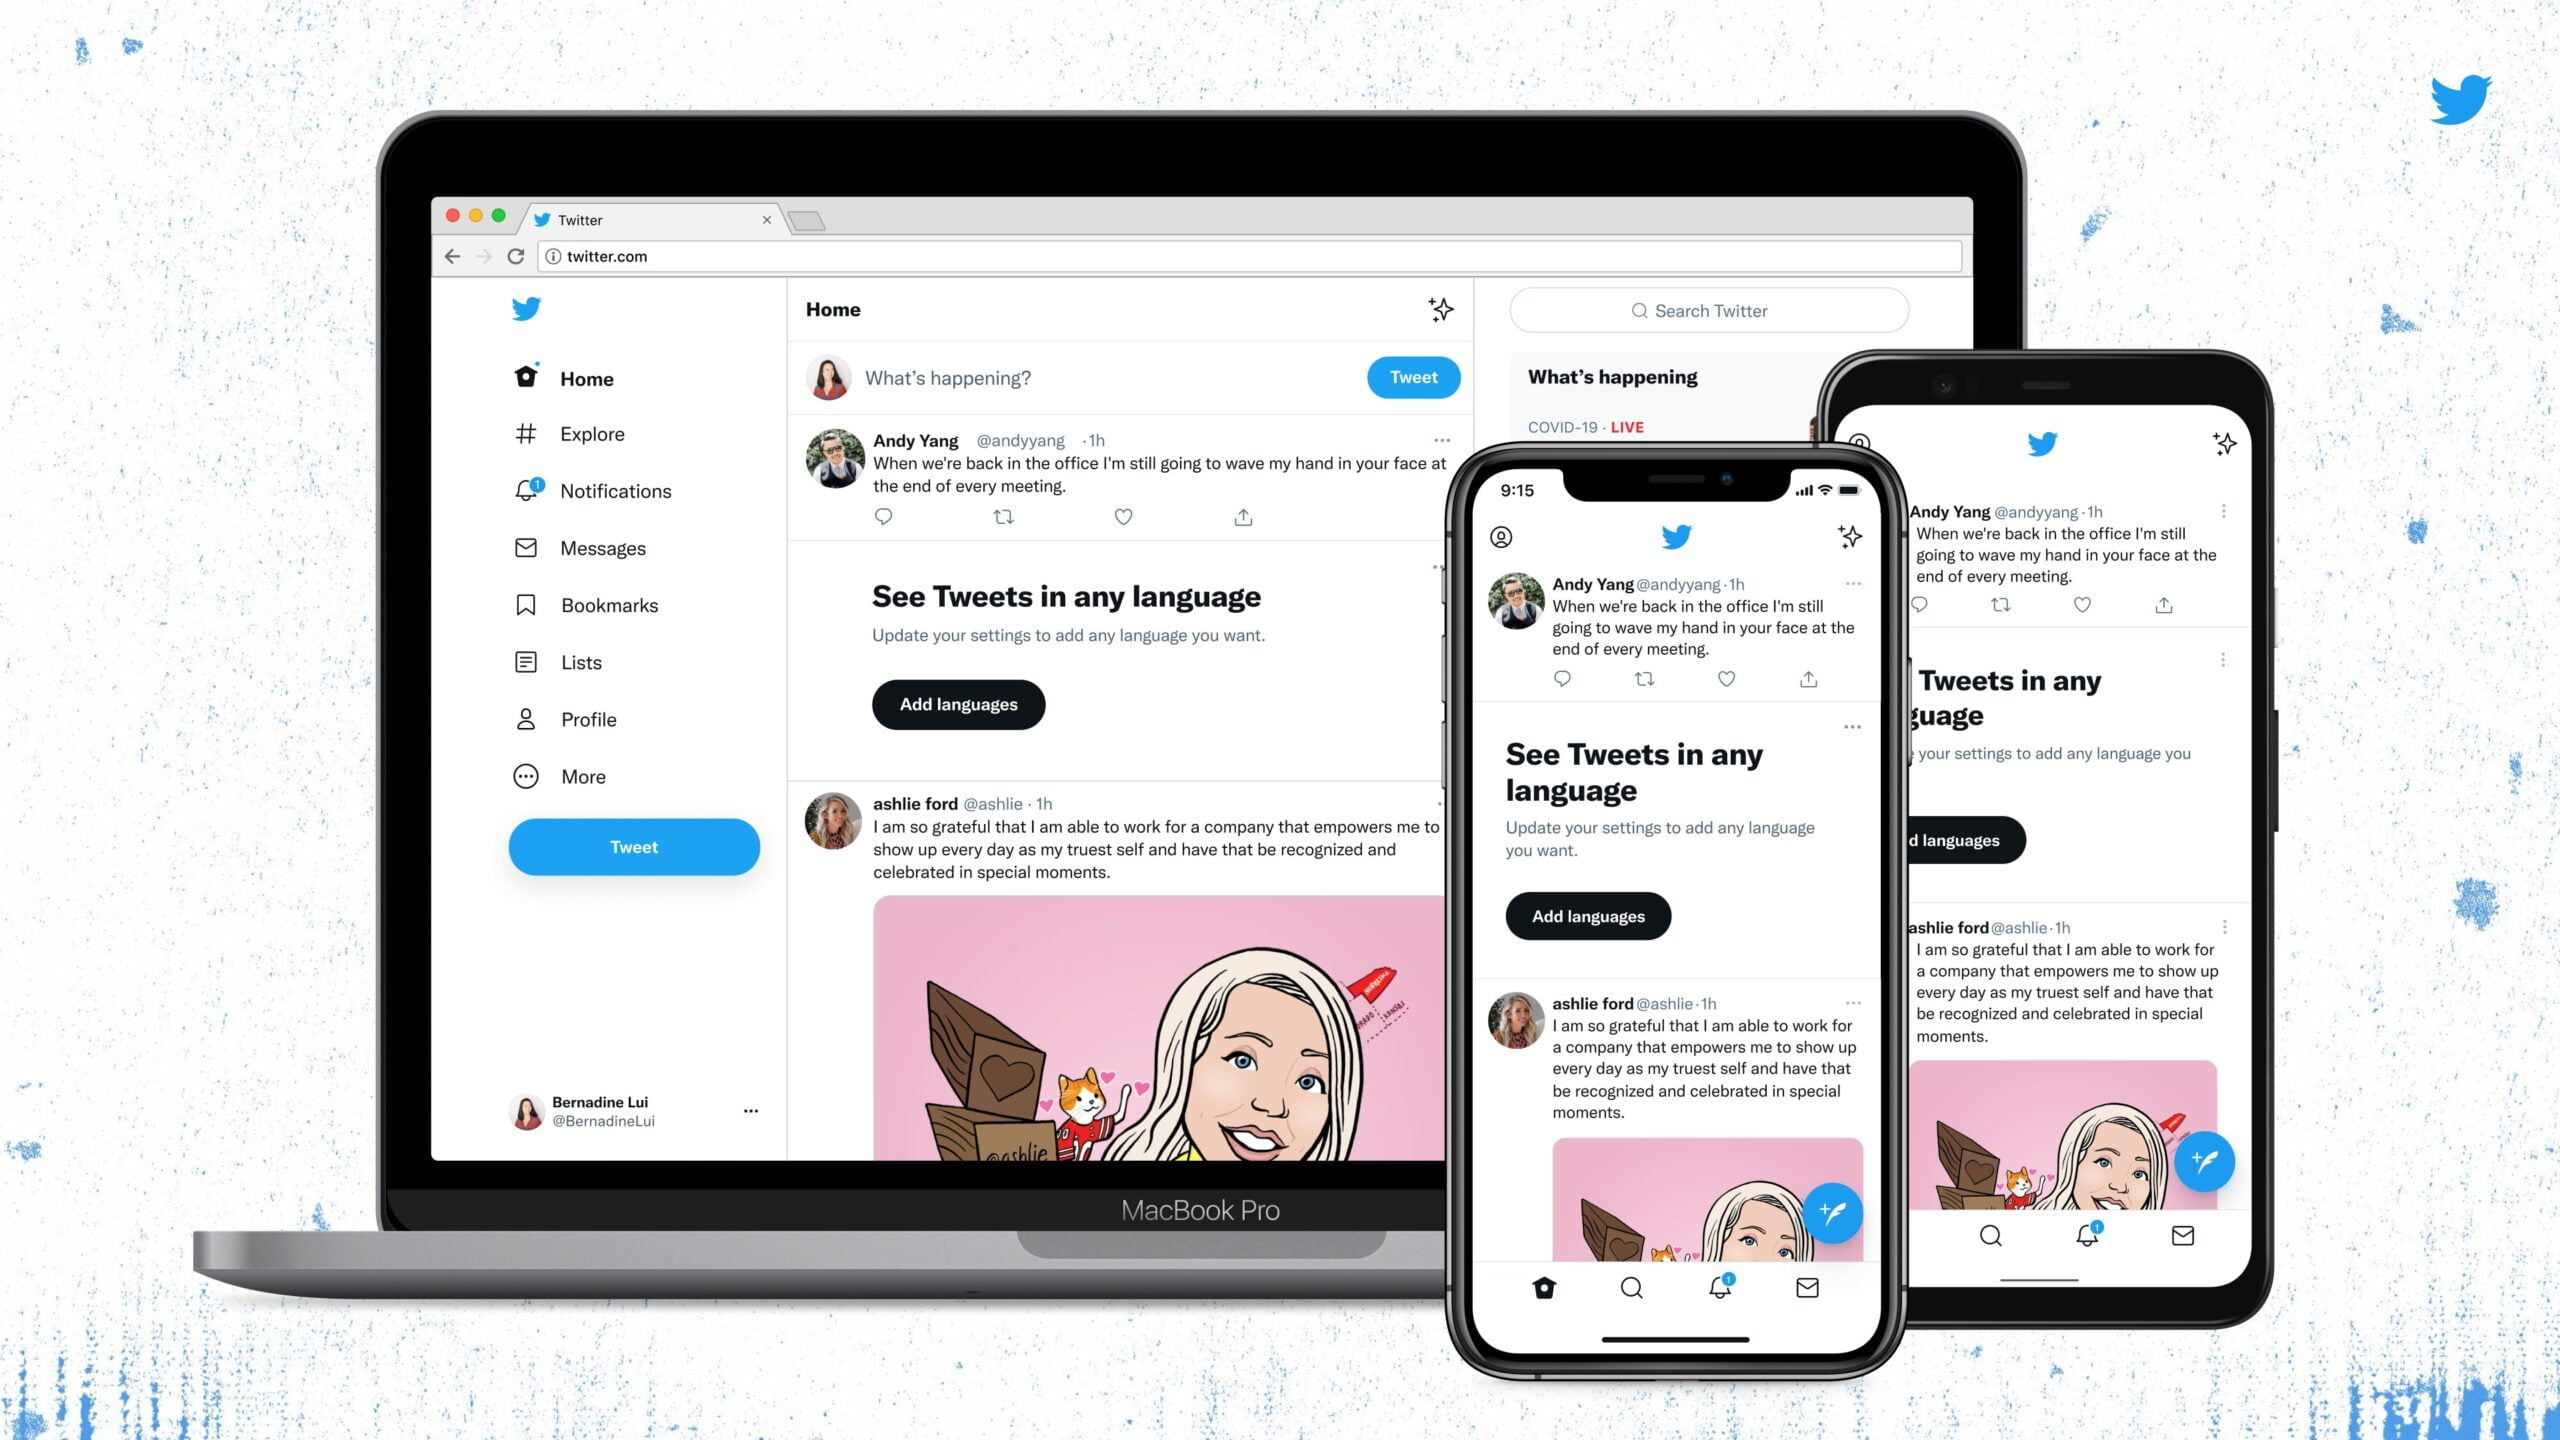 Twitter Redesign scaled